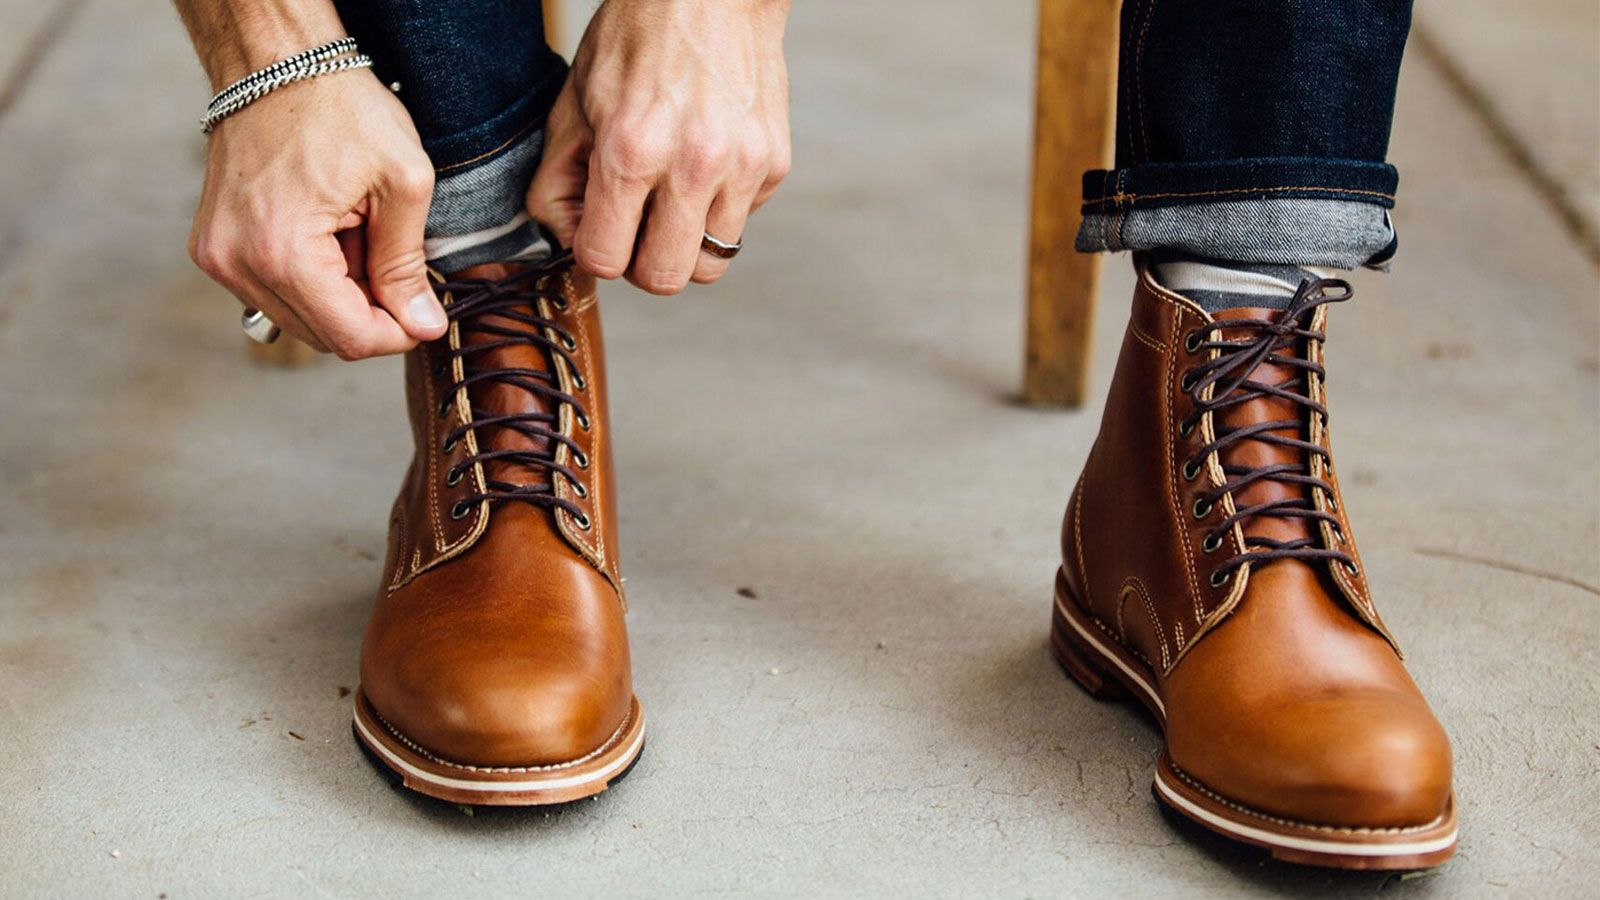 The Best Men's Leather Boots for Men to